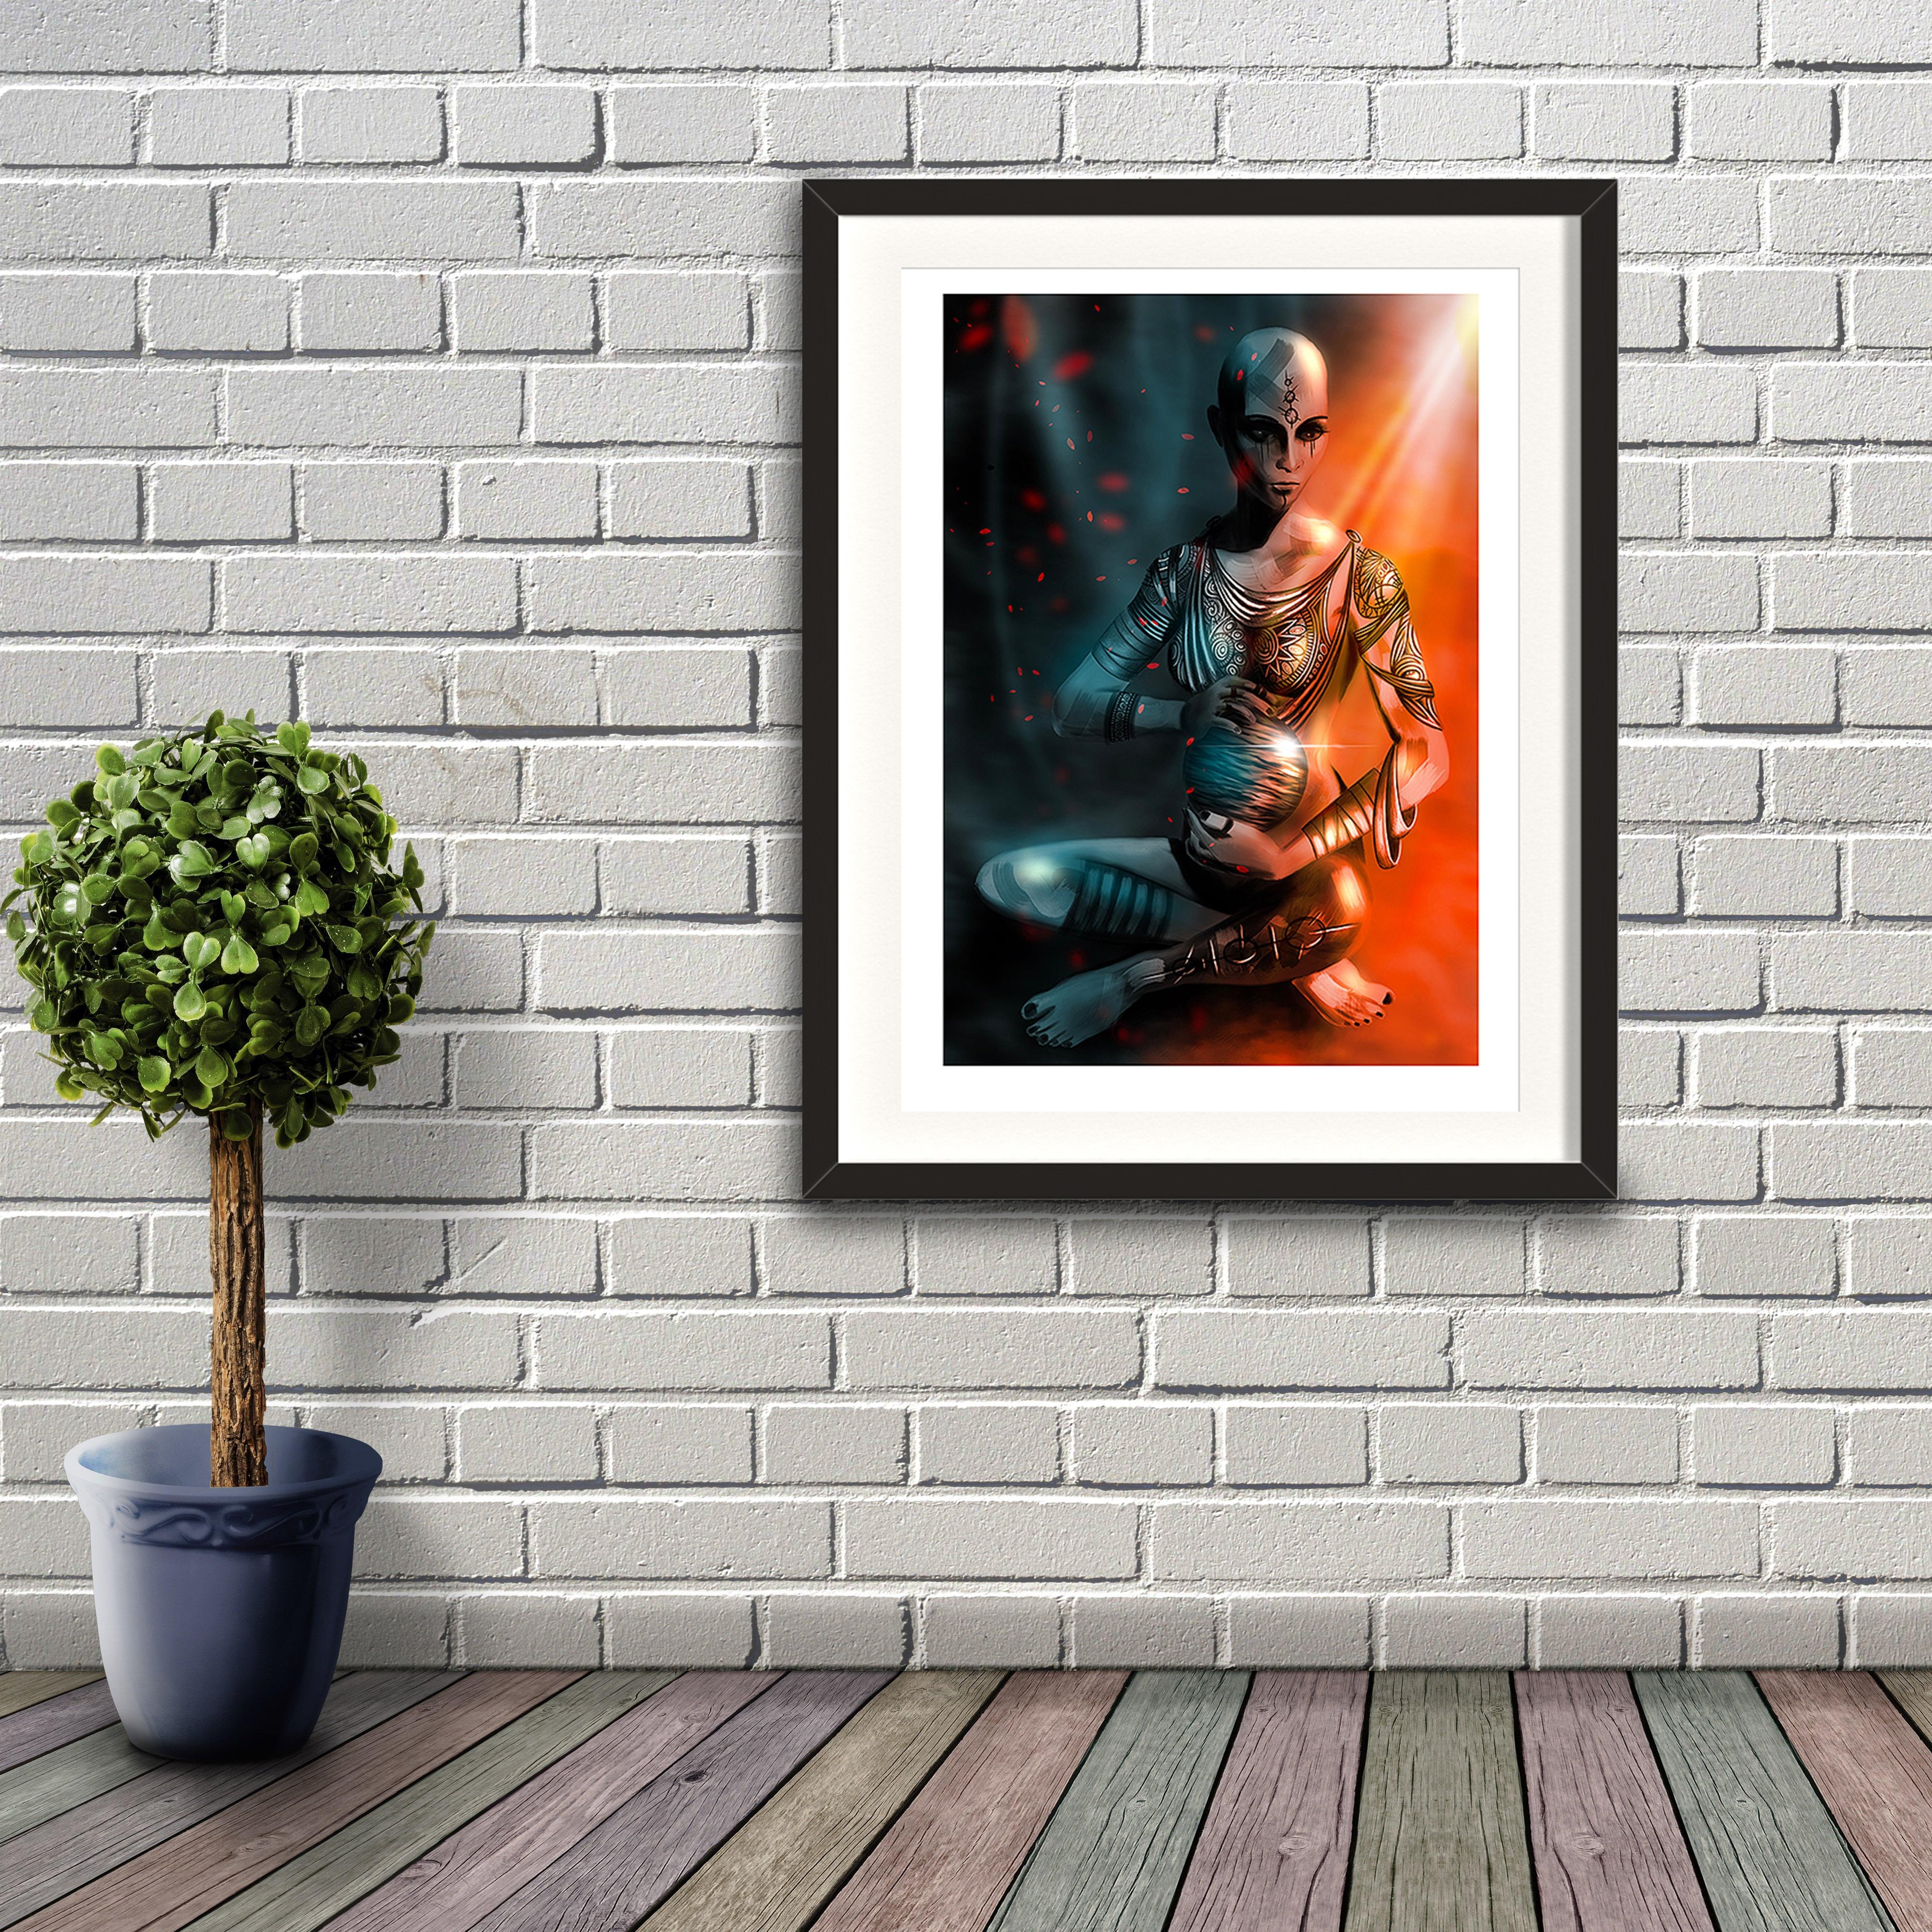 A digital painting by Lily Bourne printed on eco fine art paper titled Exist which shows a shaven headed tattooed female sitting cross legged hold a shining sphere with light cascading from above. Artwork shown in a black frame hanging on a brick wall.